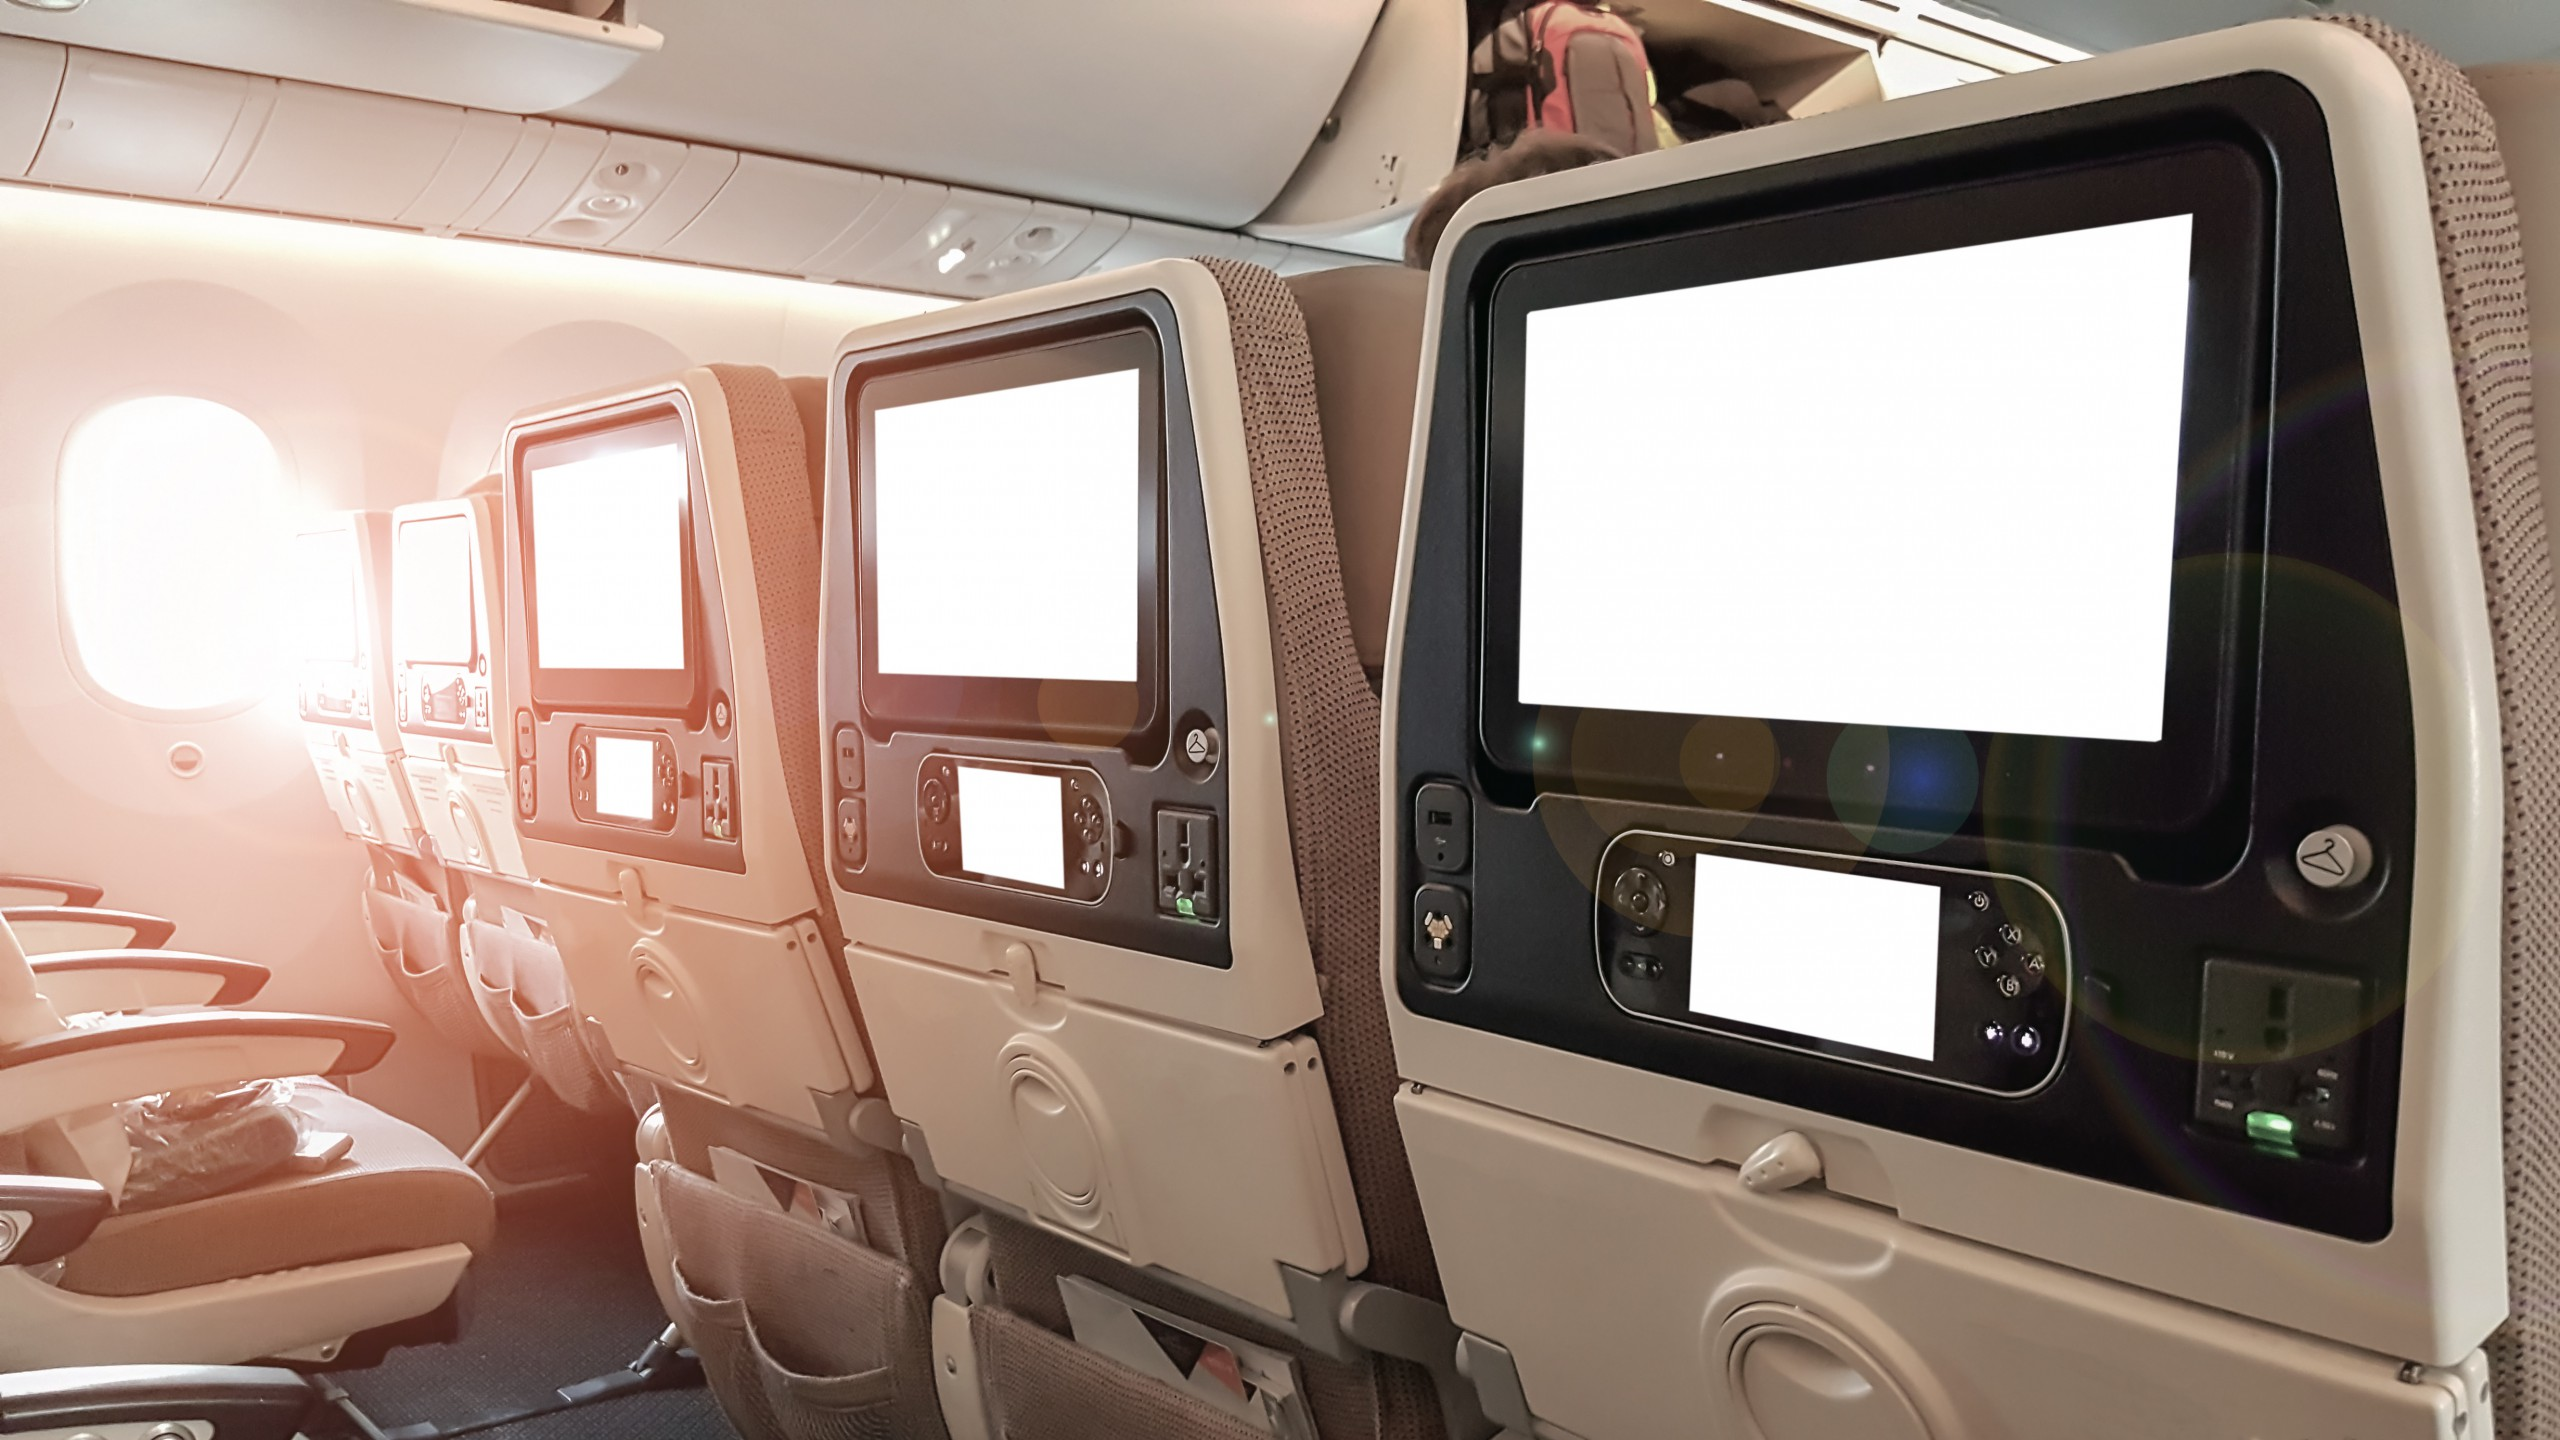 What Are Avionics and Aircraft Cabin Electronics?